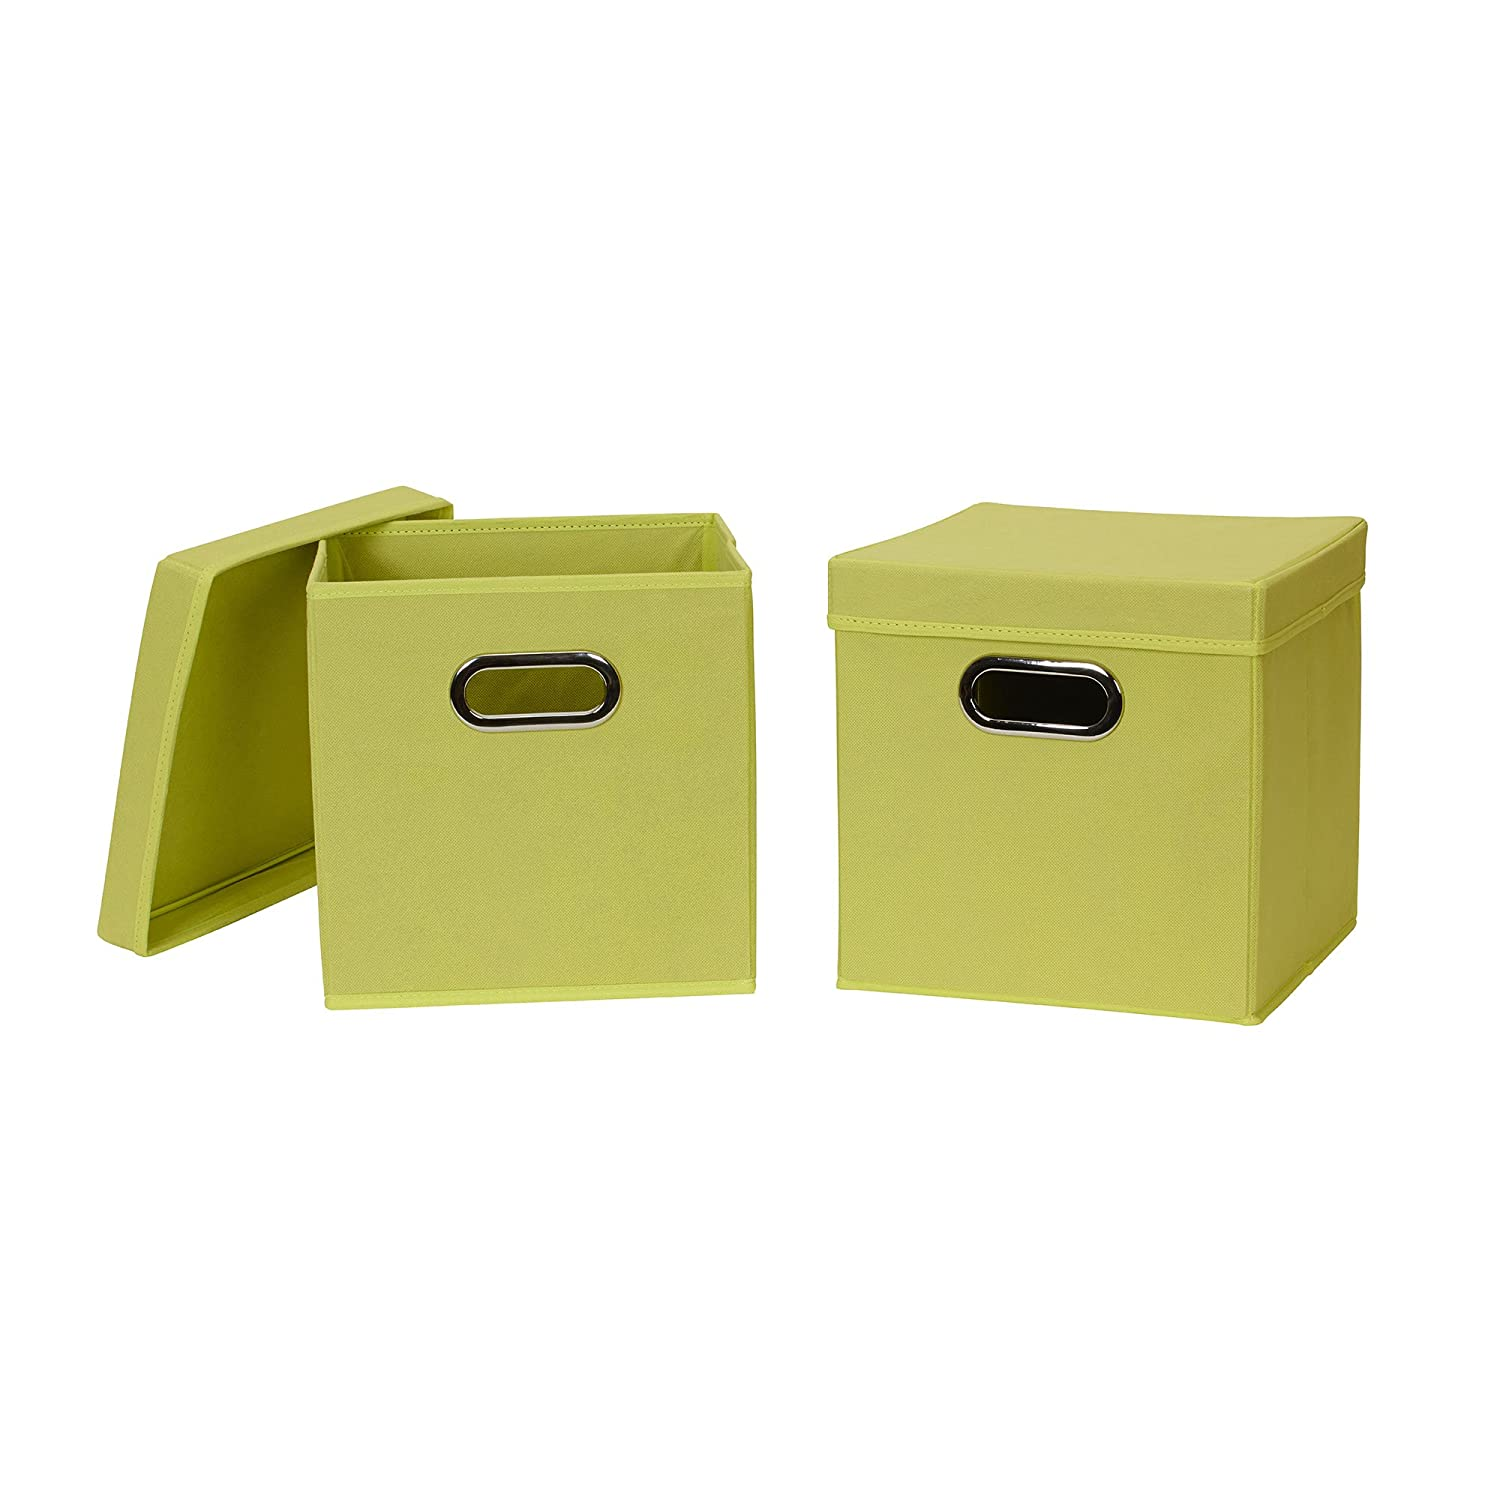 Household Essentials 42 model Collapsible Fabric Storage Cube Bins with Lid, 2 Pack, Lime